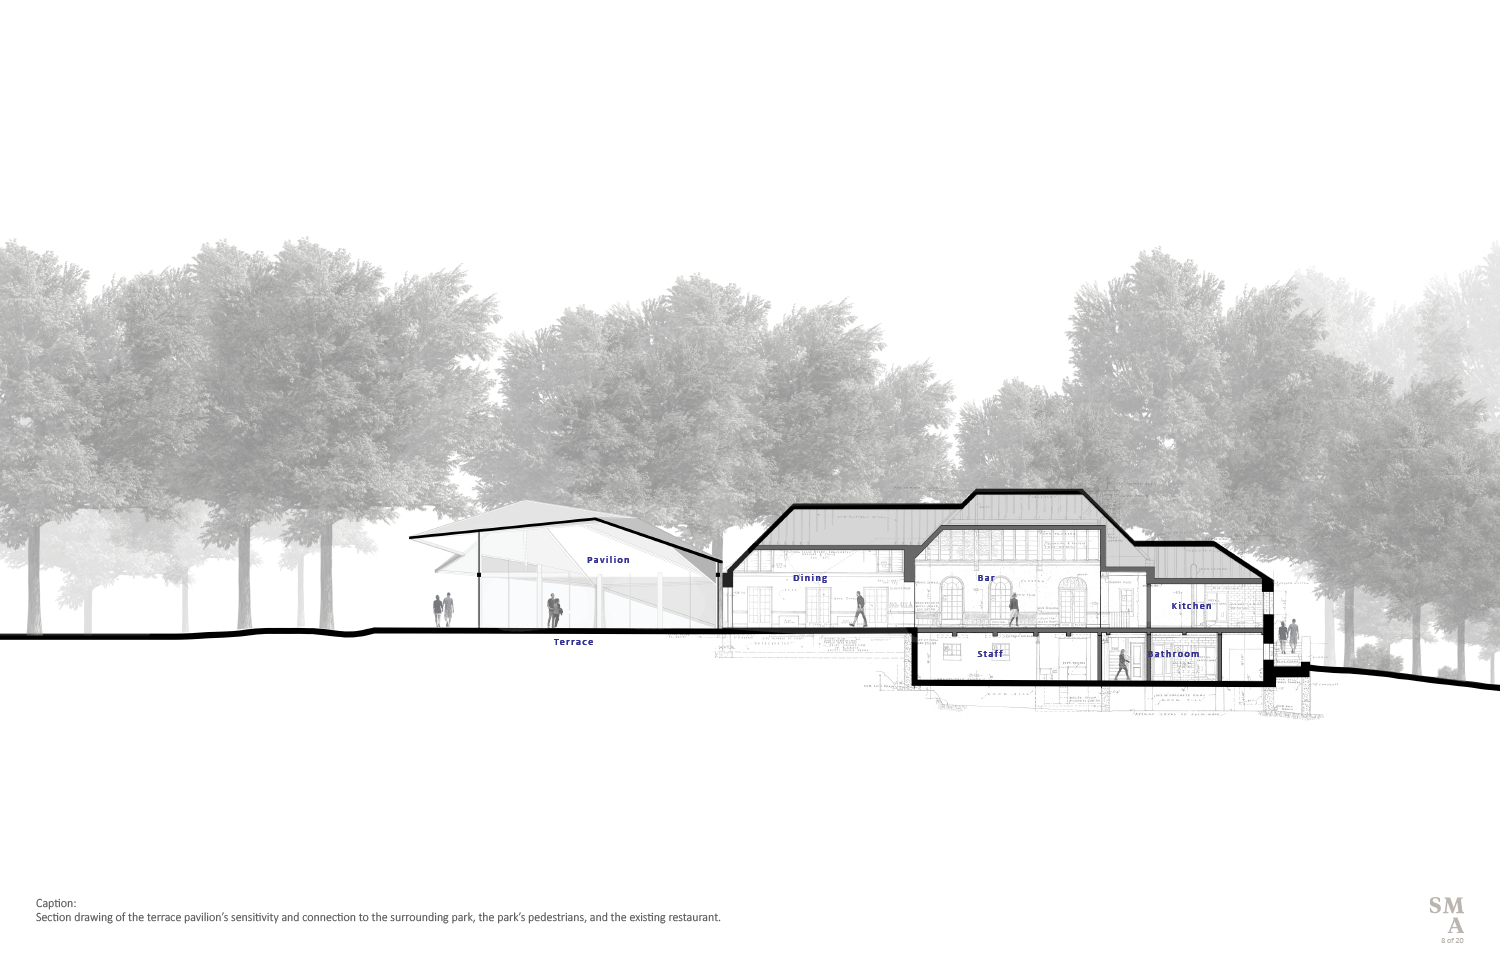 Section drawing of the terrace pavilion's sensitivity and connection to the surrounding park, the park's pedestrians, and the existing restaurant. SMA | Stephen Moser Architect - Design Team}